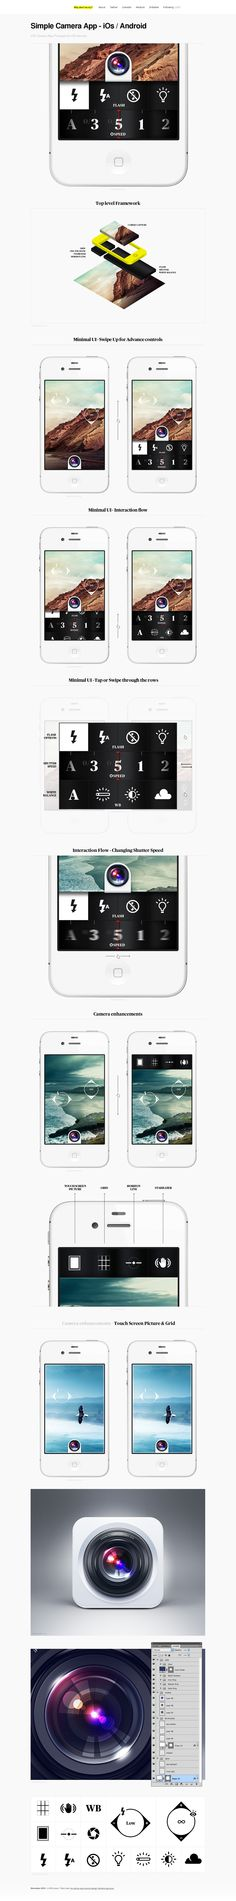 Simple Camera App - iOs- Android